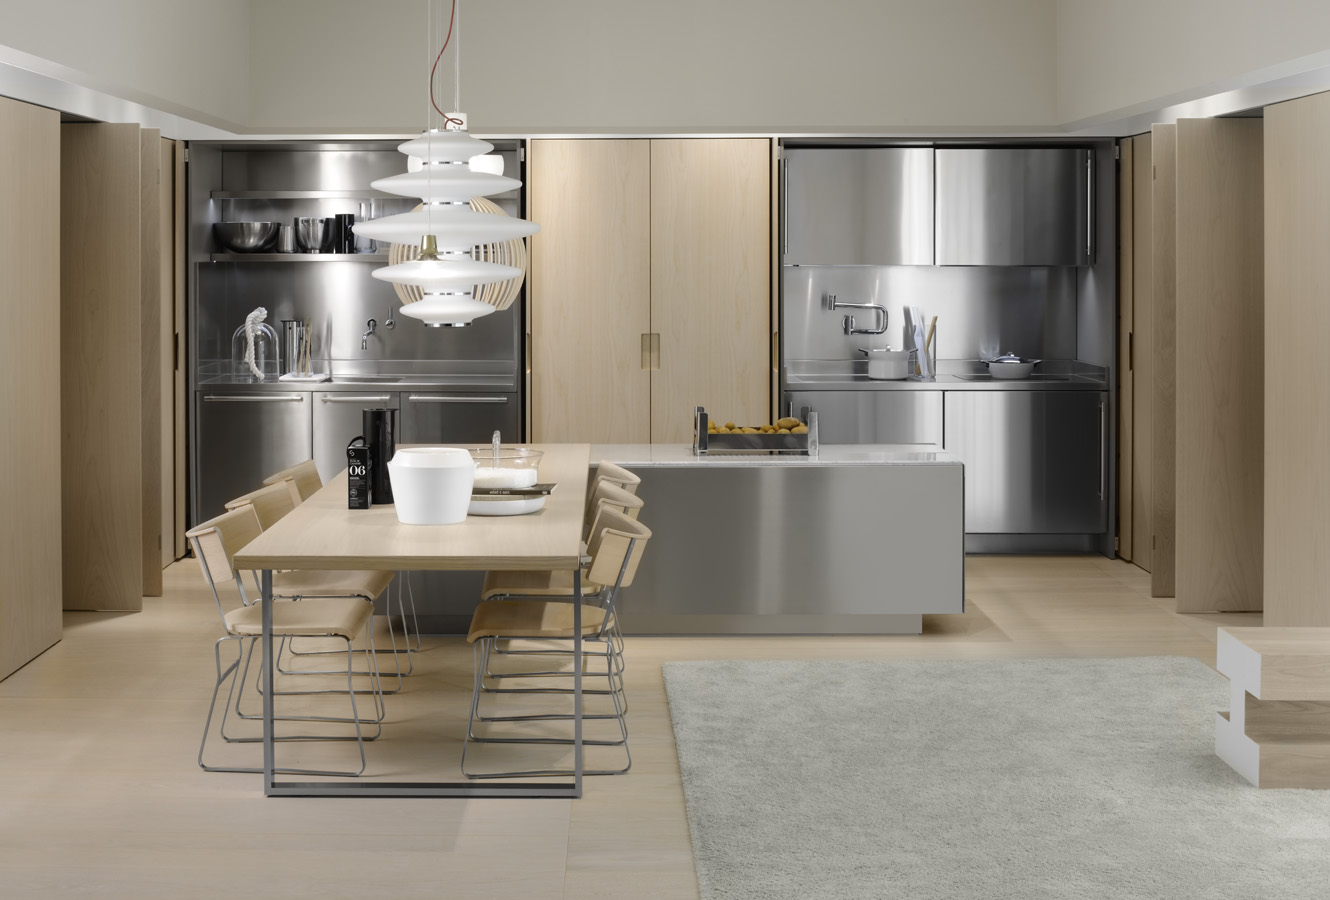 Modern italian kitchen design from arclinea - Italian kitchen design ...